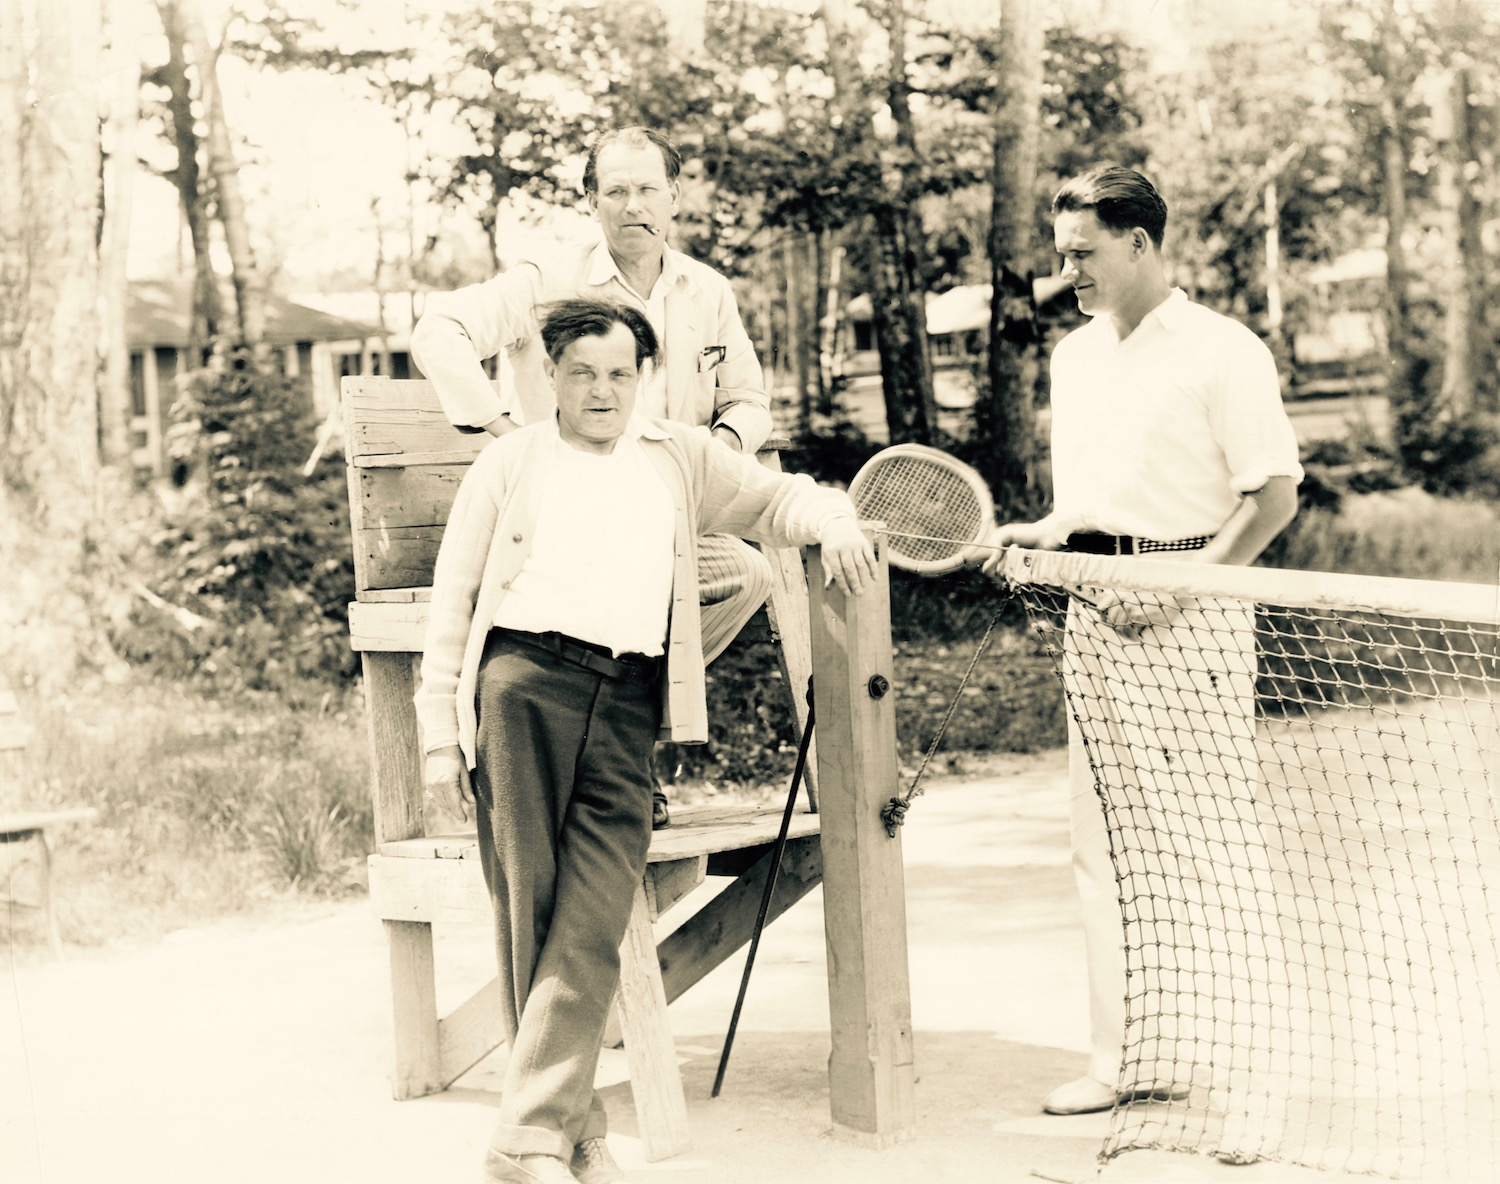 Warren Hymer (standing right) with his father, playwright John B. Hymer (seated) and playwright Sam Shipman (standing left) at the tennis courts at Lakewood.  (Author's collection.)